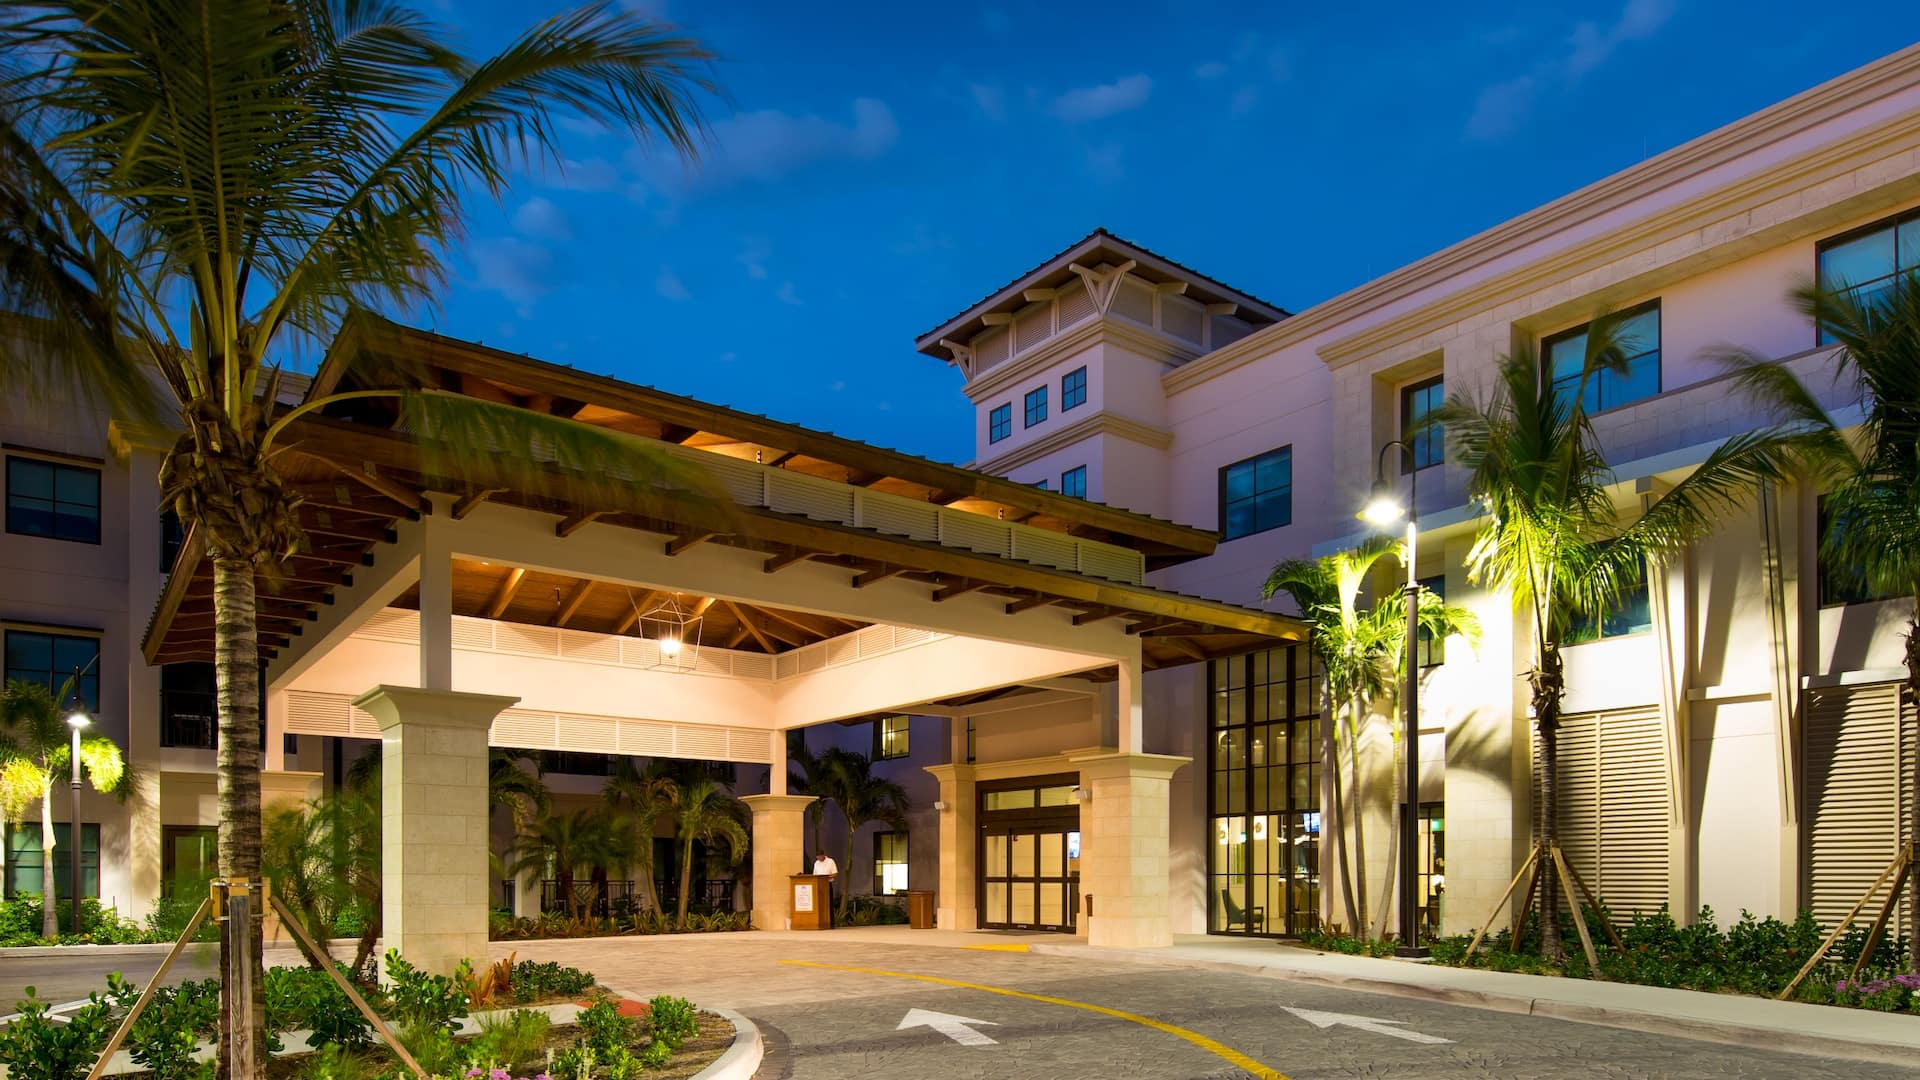 Hyatt House Naples / 5th Avenue Exterior